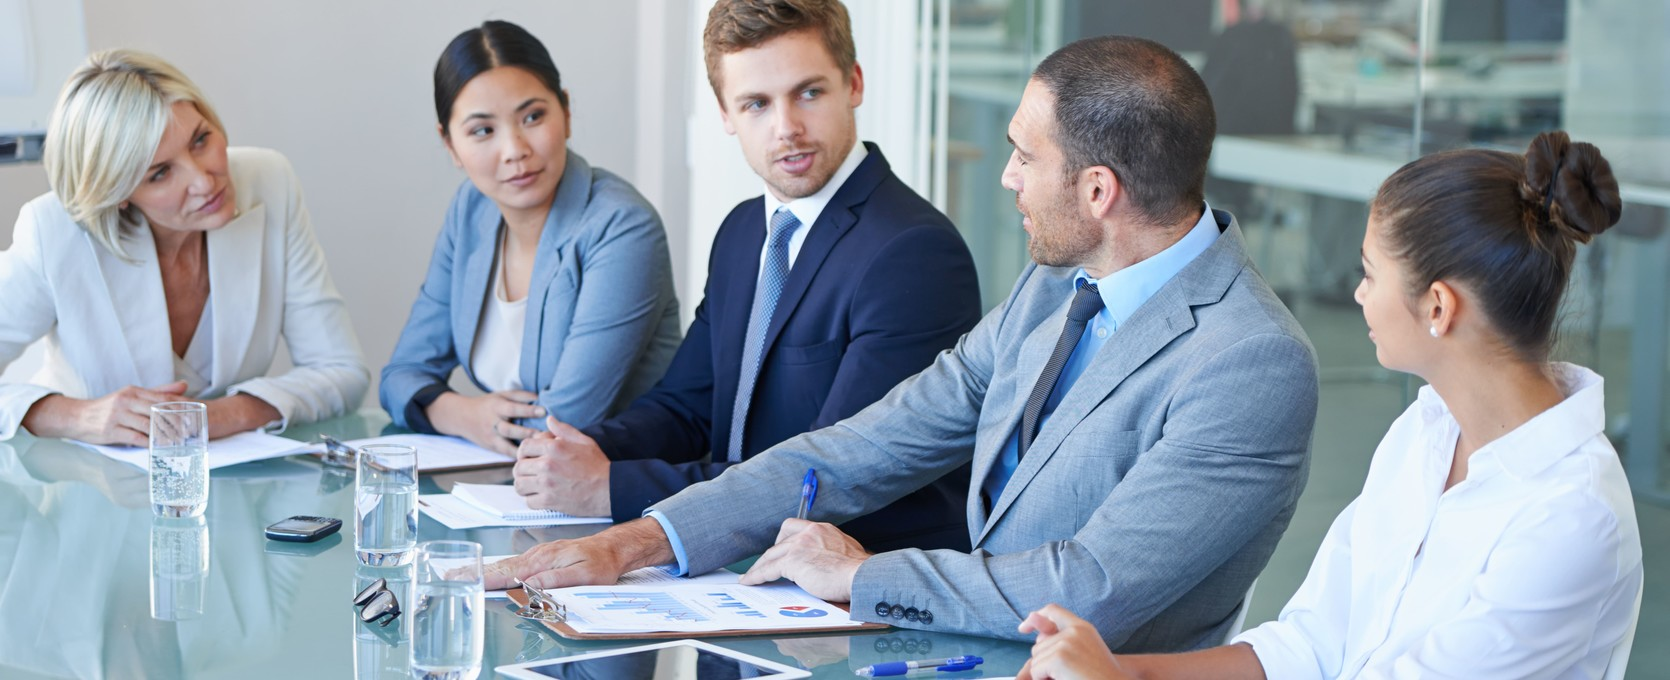 Young professionals gathered around in a conference room for a collaborative meeting